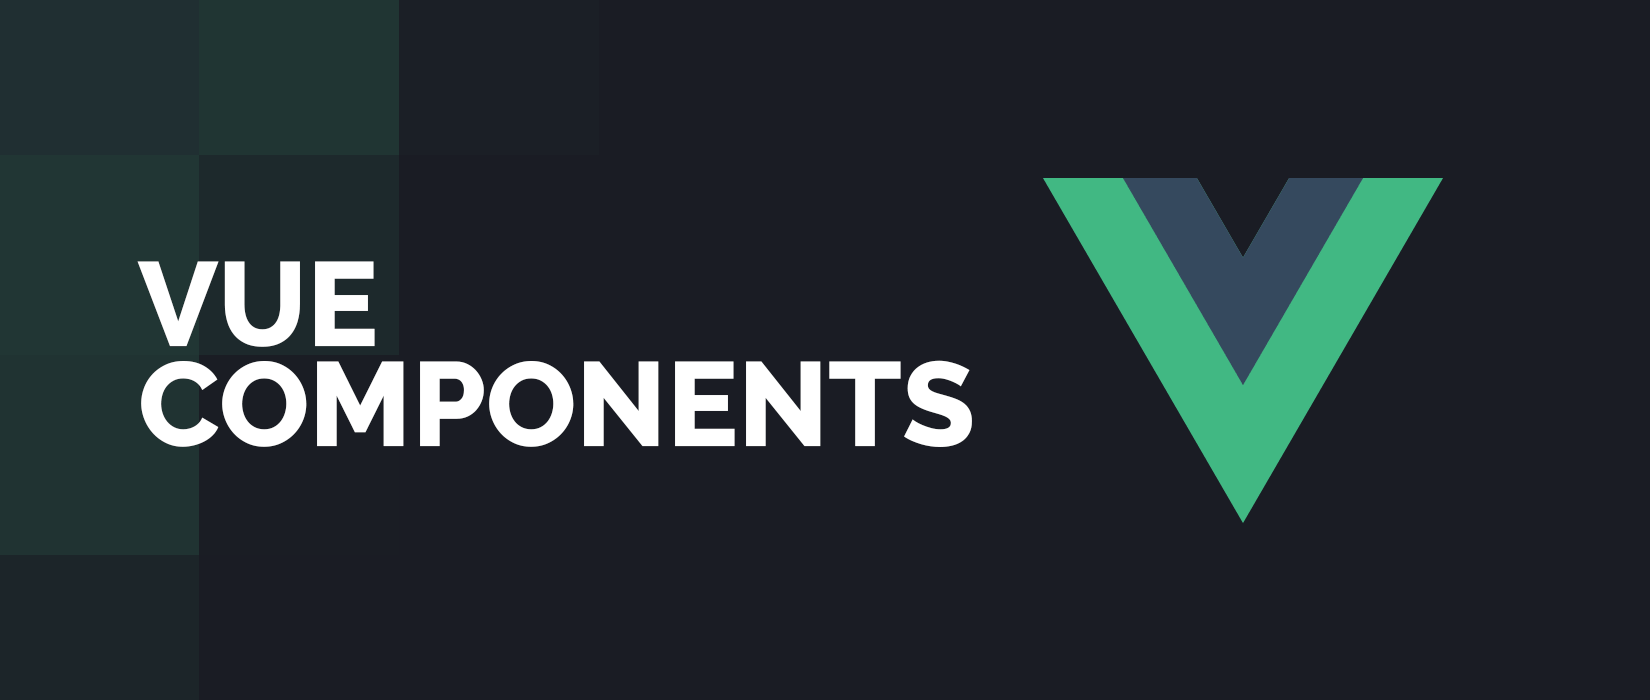 Vue Components Tutorial - The Basic Building Blocks of a Vue